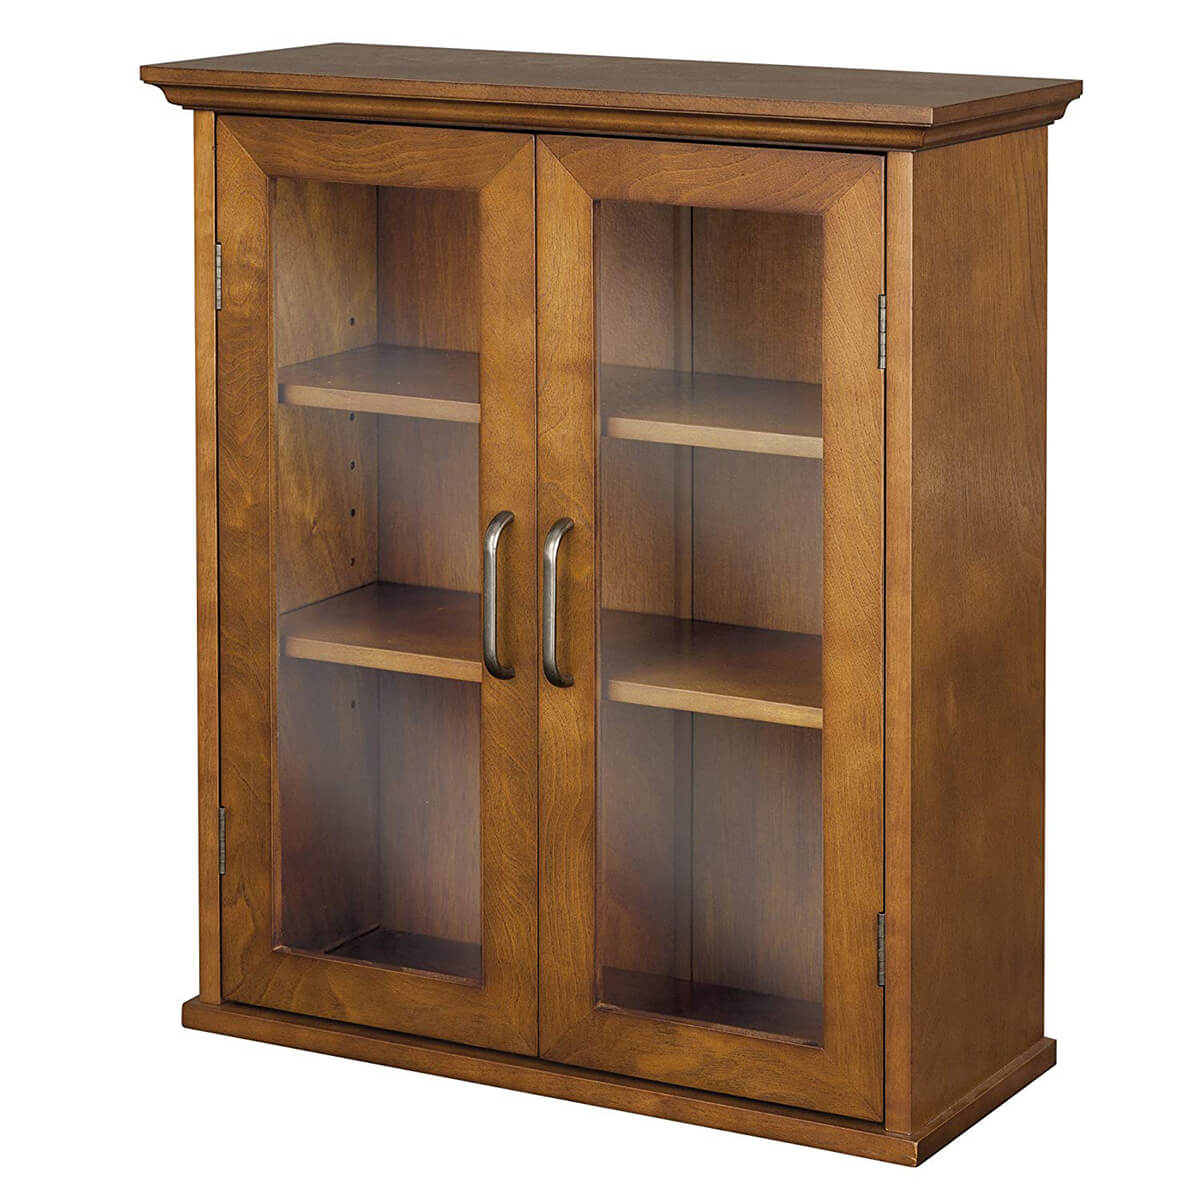 Elegant Oak Wood Wall Cabinet